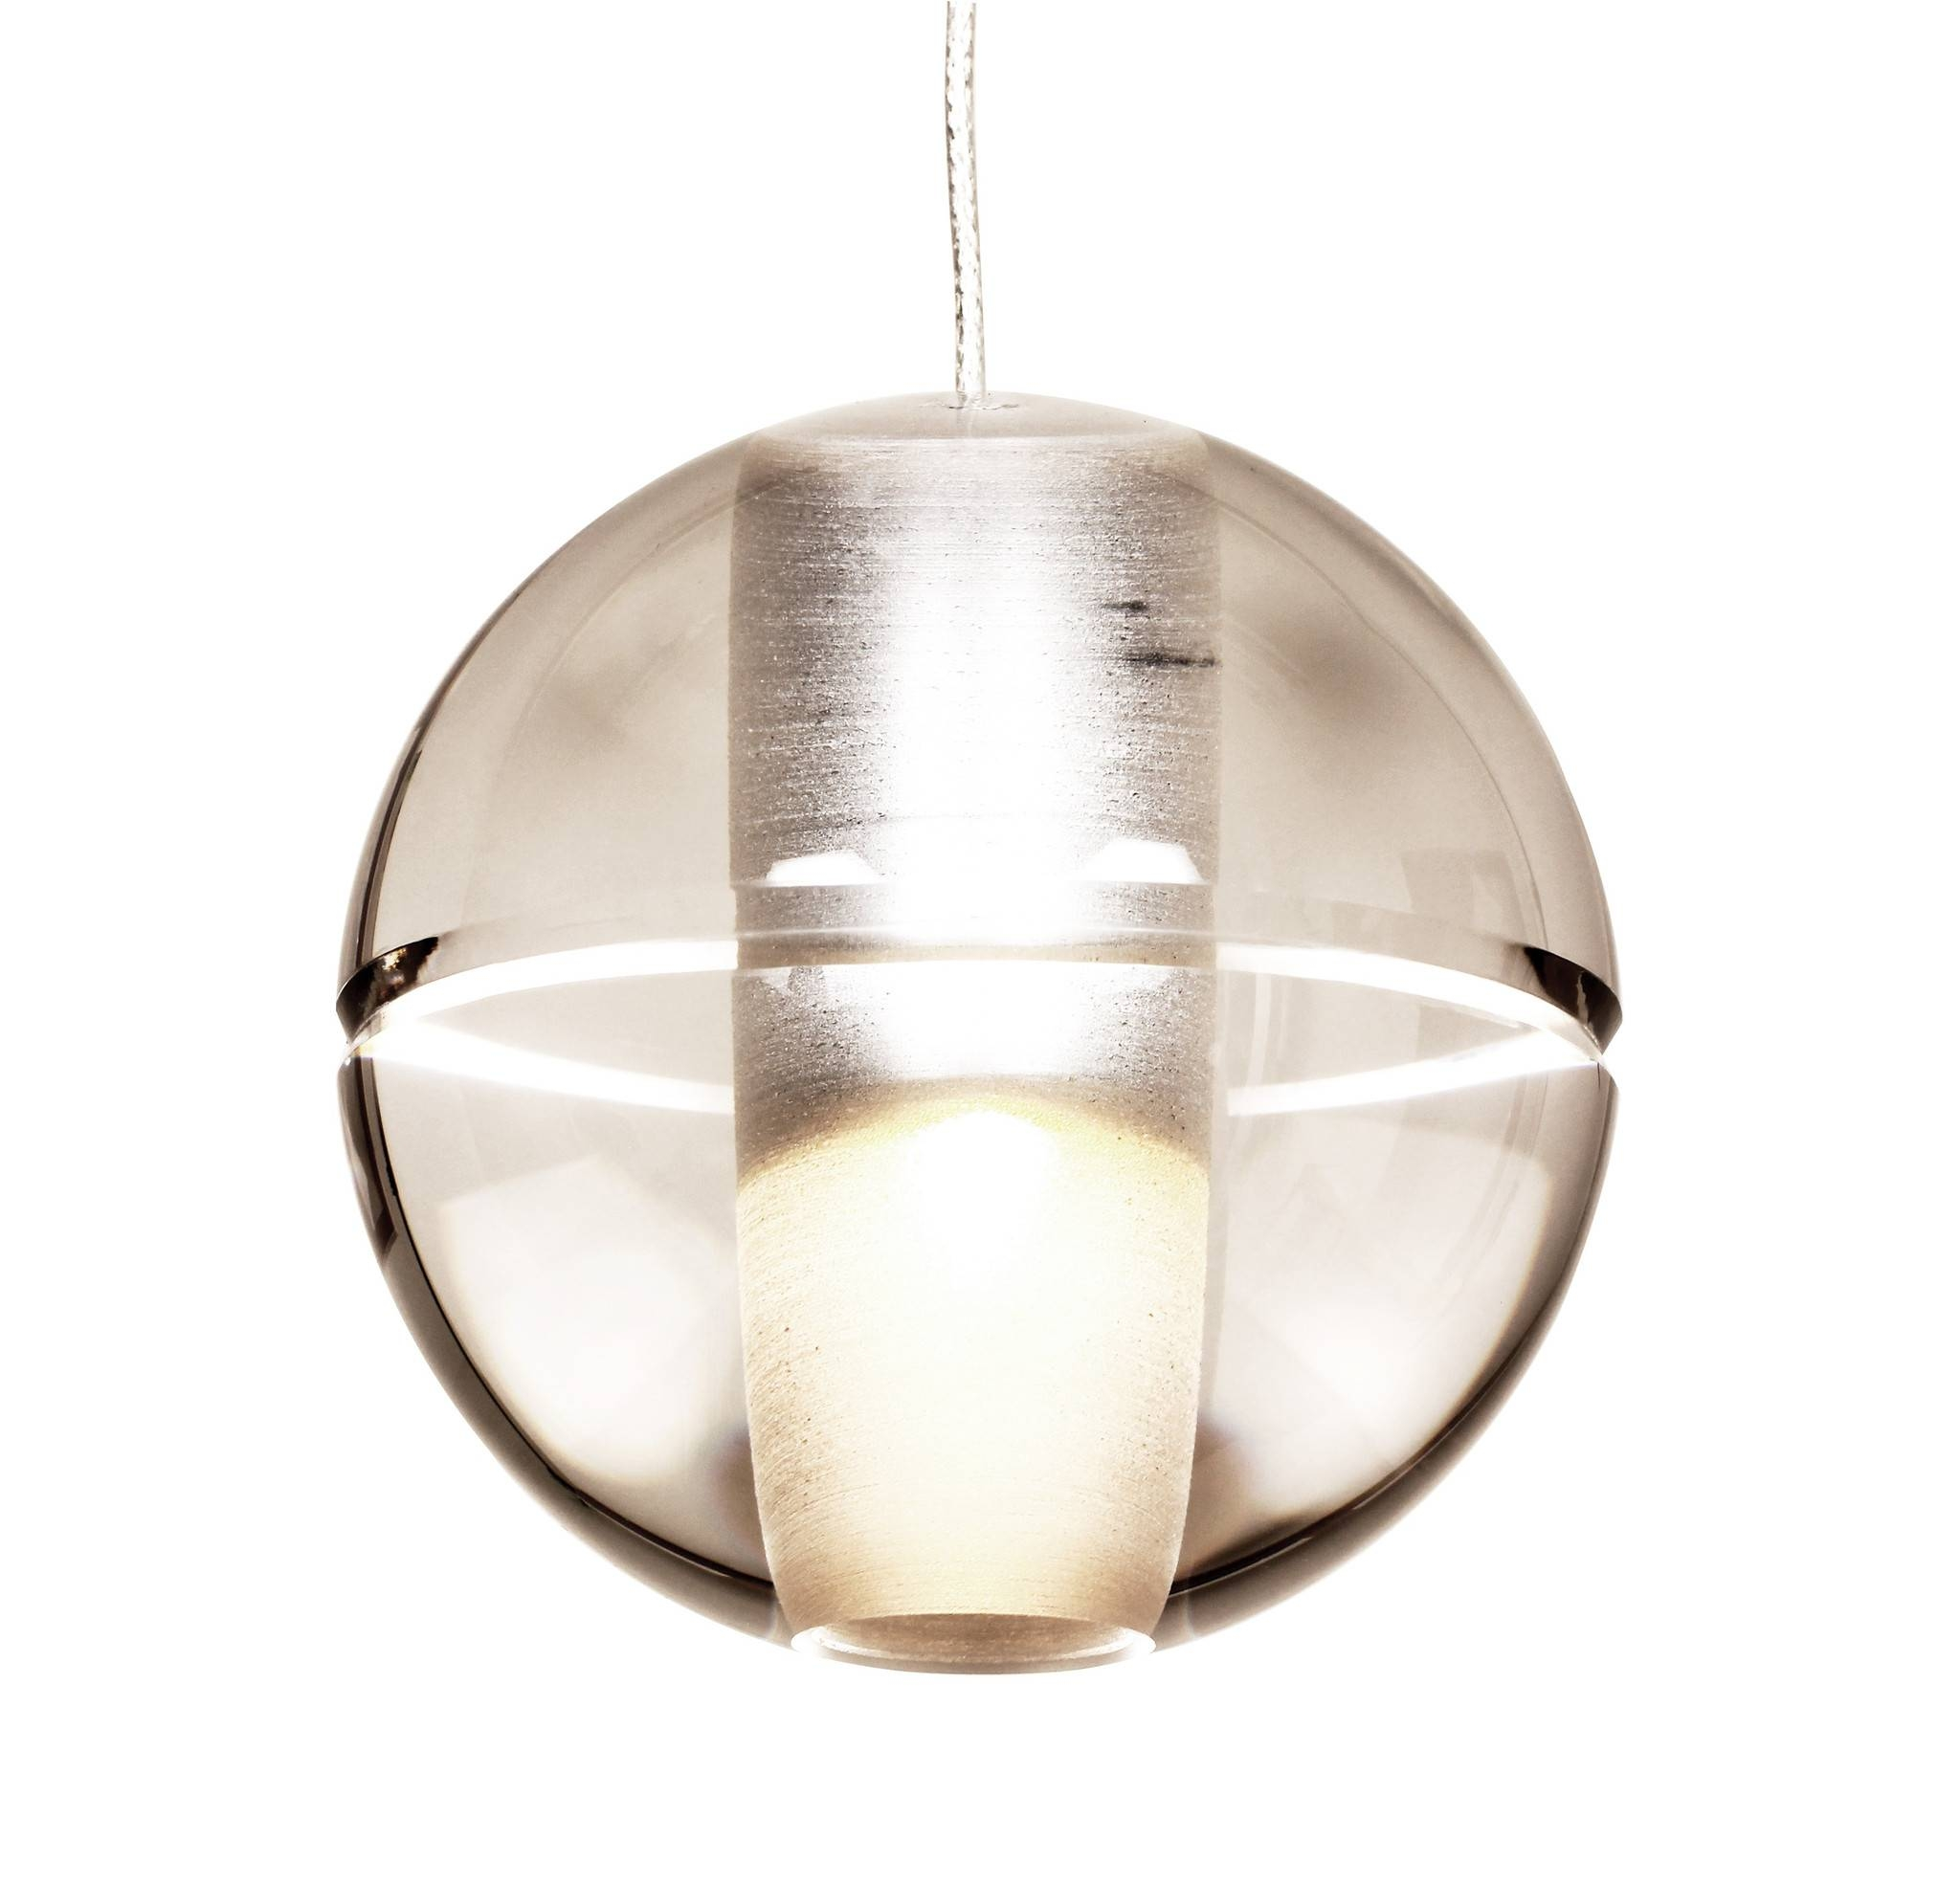 Lighting Design : Appealing Hand Blown Glass Pendant Lights New in Hand Blown Glass Pendant Lights Australia (Image 11 of 15)